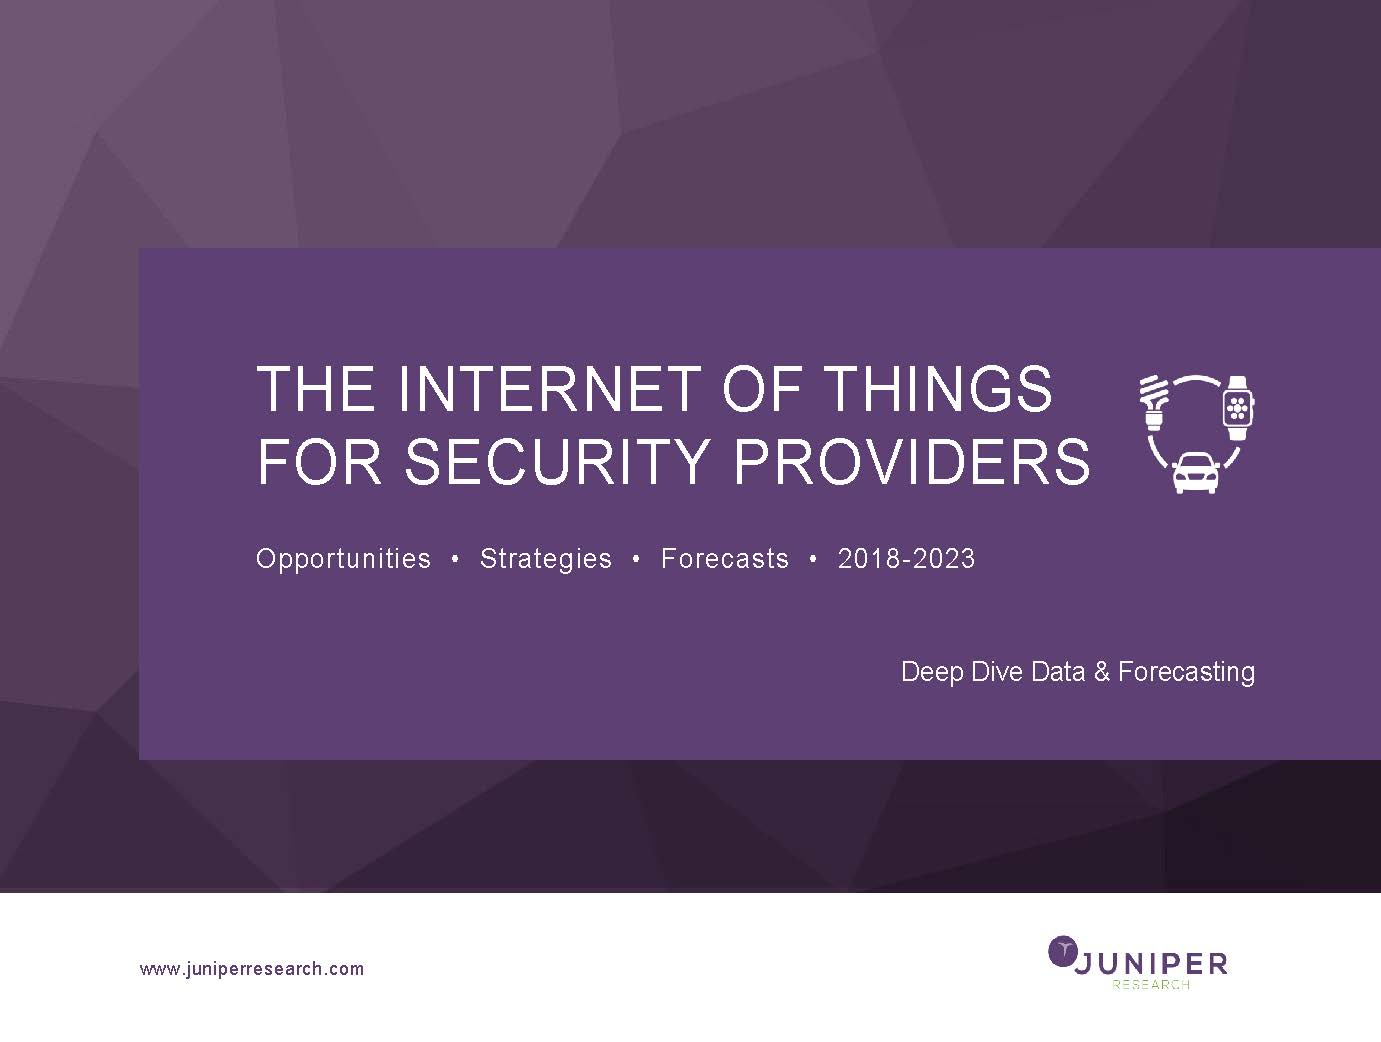 The Internet of Things for Security Providers - Deep Dive Data 2018-2023